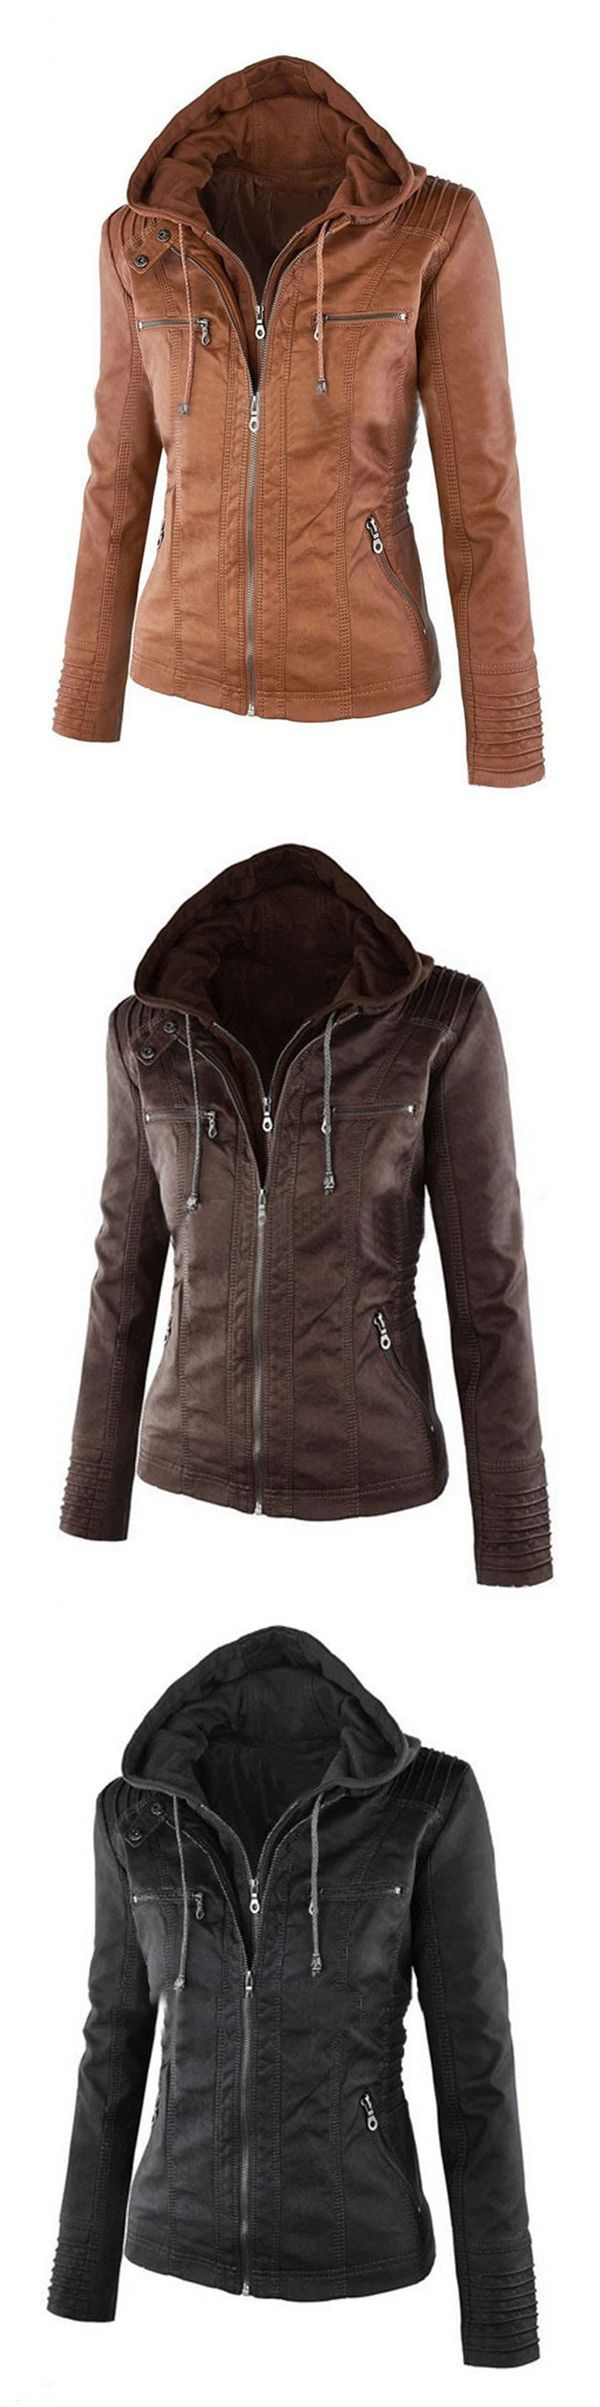 [Newchic Online Shopping] 49%OFF Casual Jackets | Hooded Jackets | PU Leather Jackets | Jackets for Women #jackets #womensfashion #winterfashion